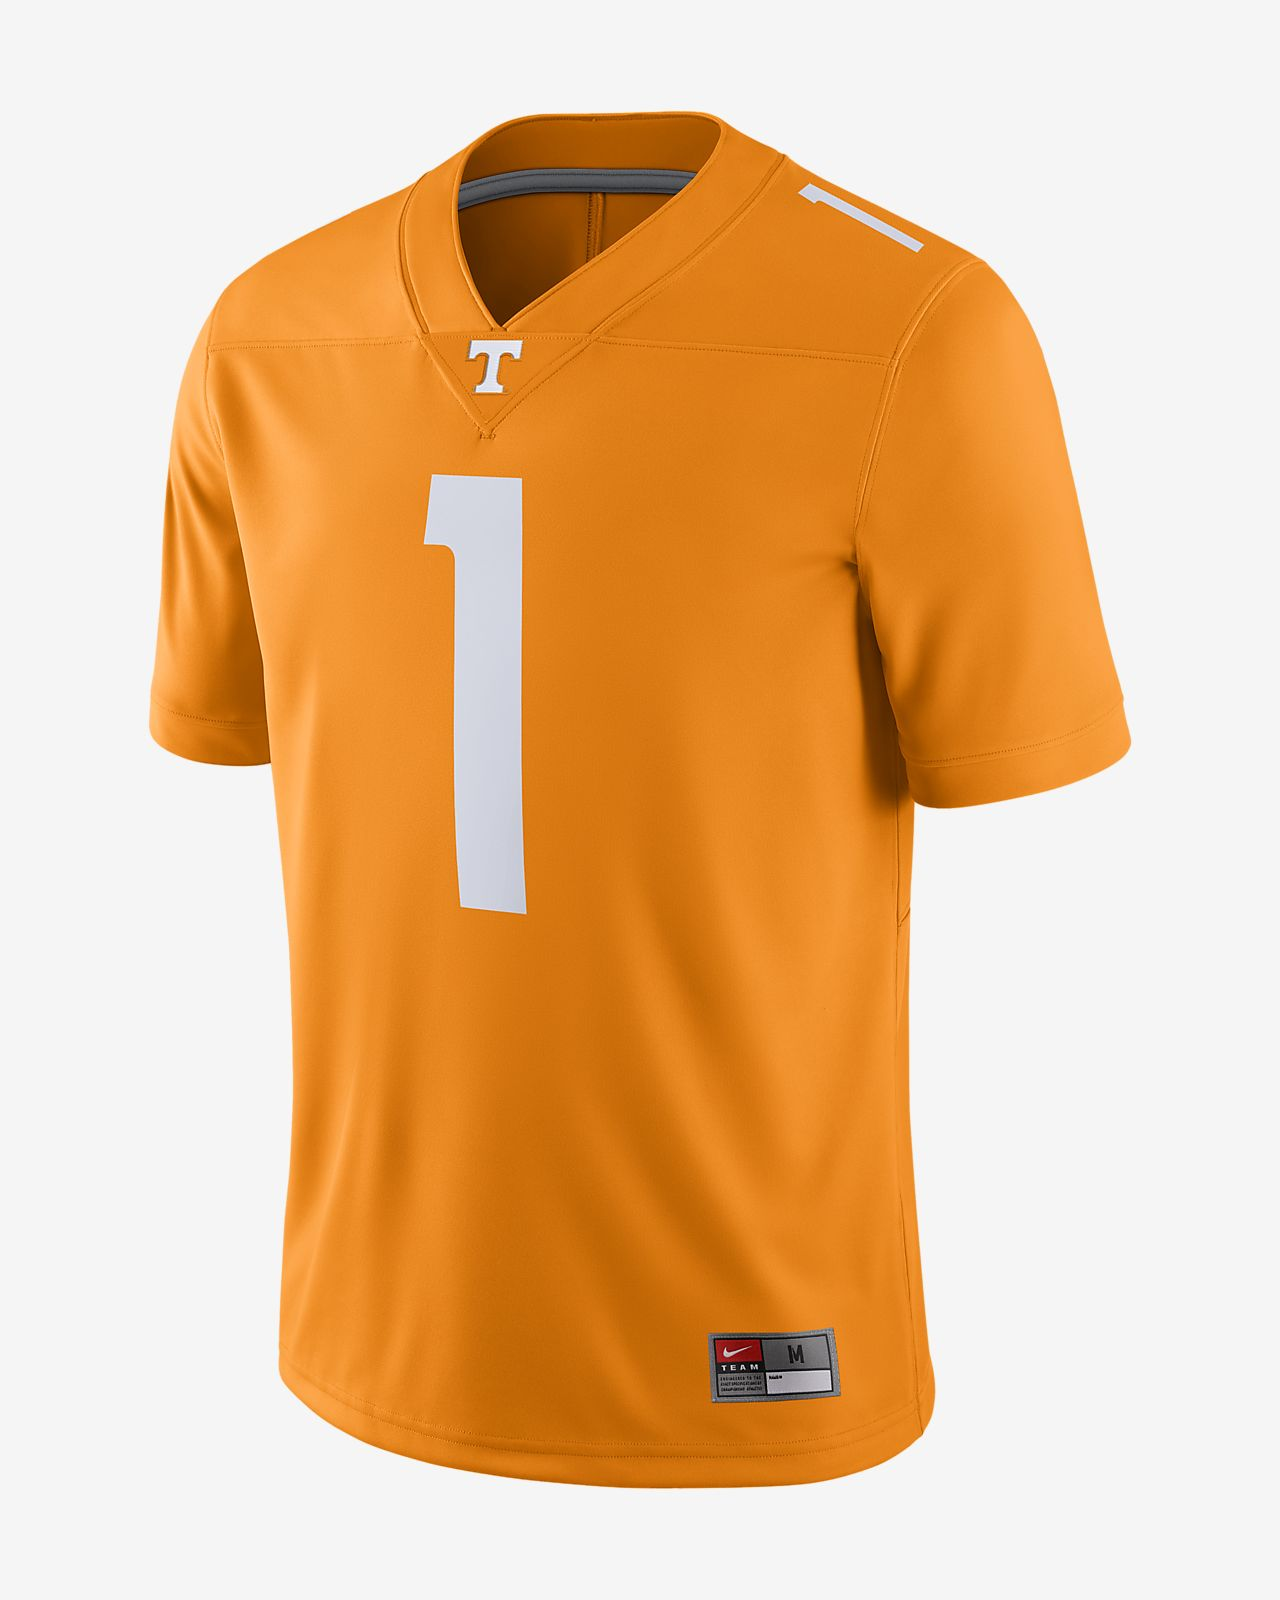 new arrivals 68315 f3dd3 Nike College Game (Tennessee Volunteers) Men's Football Jersey